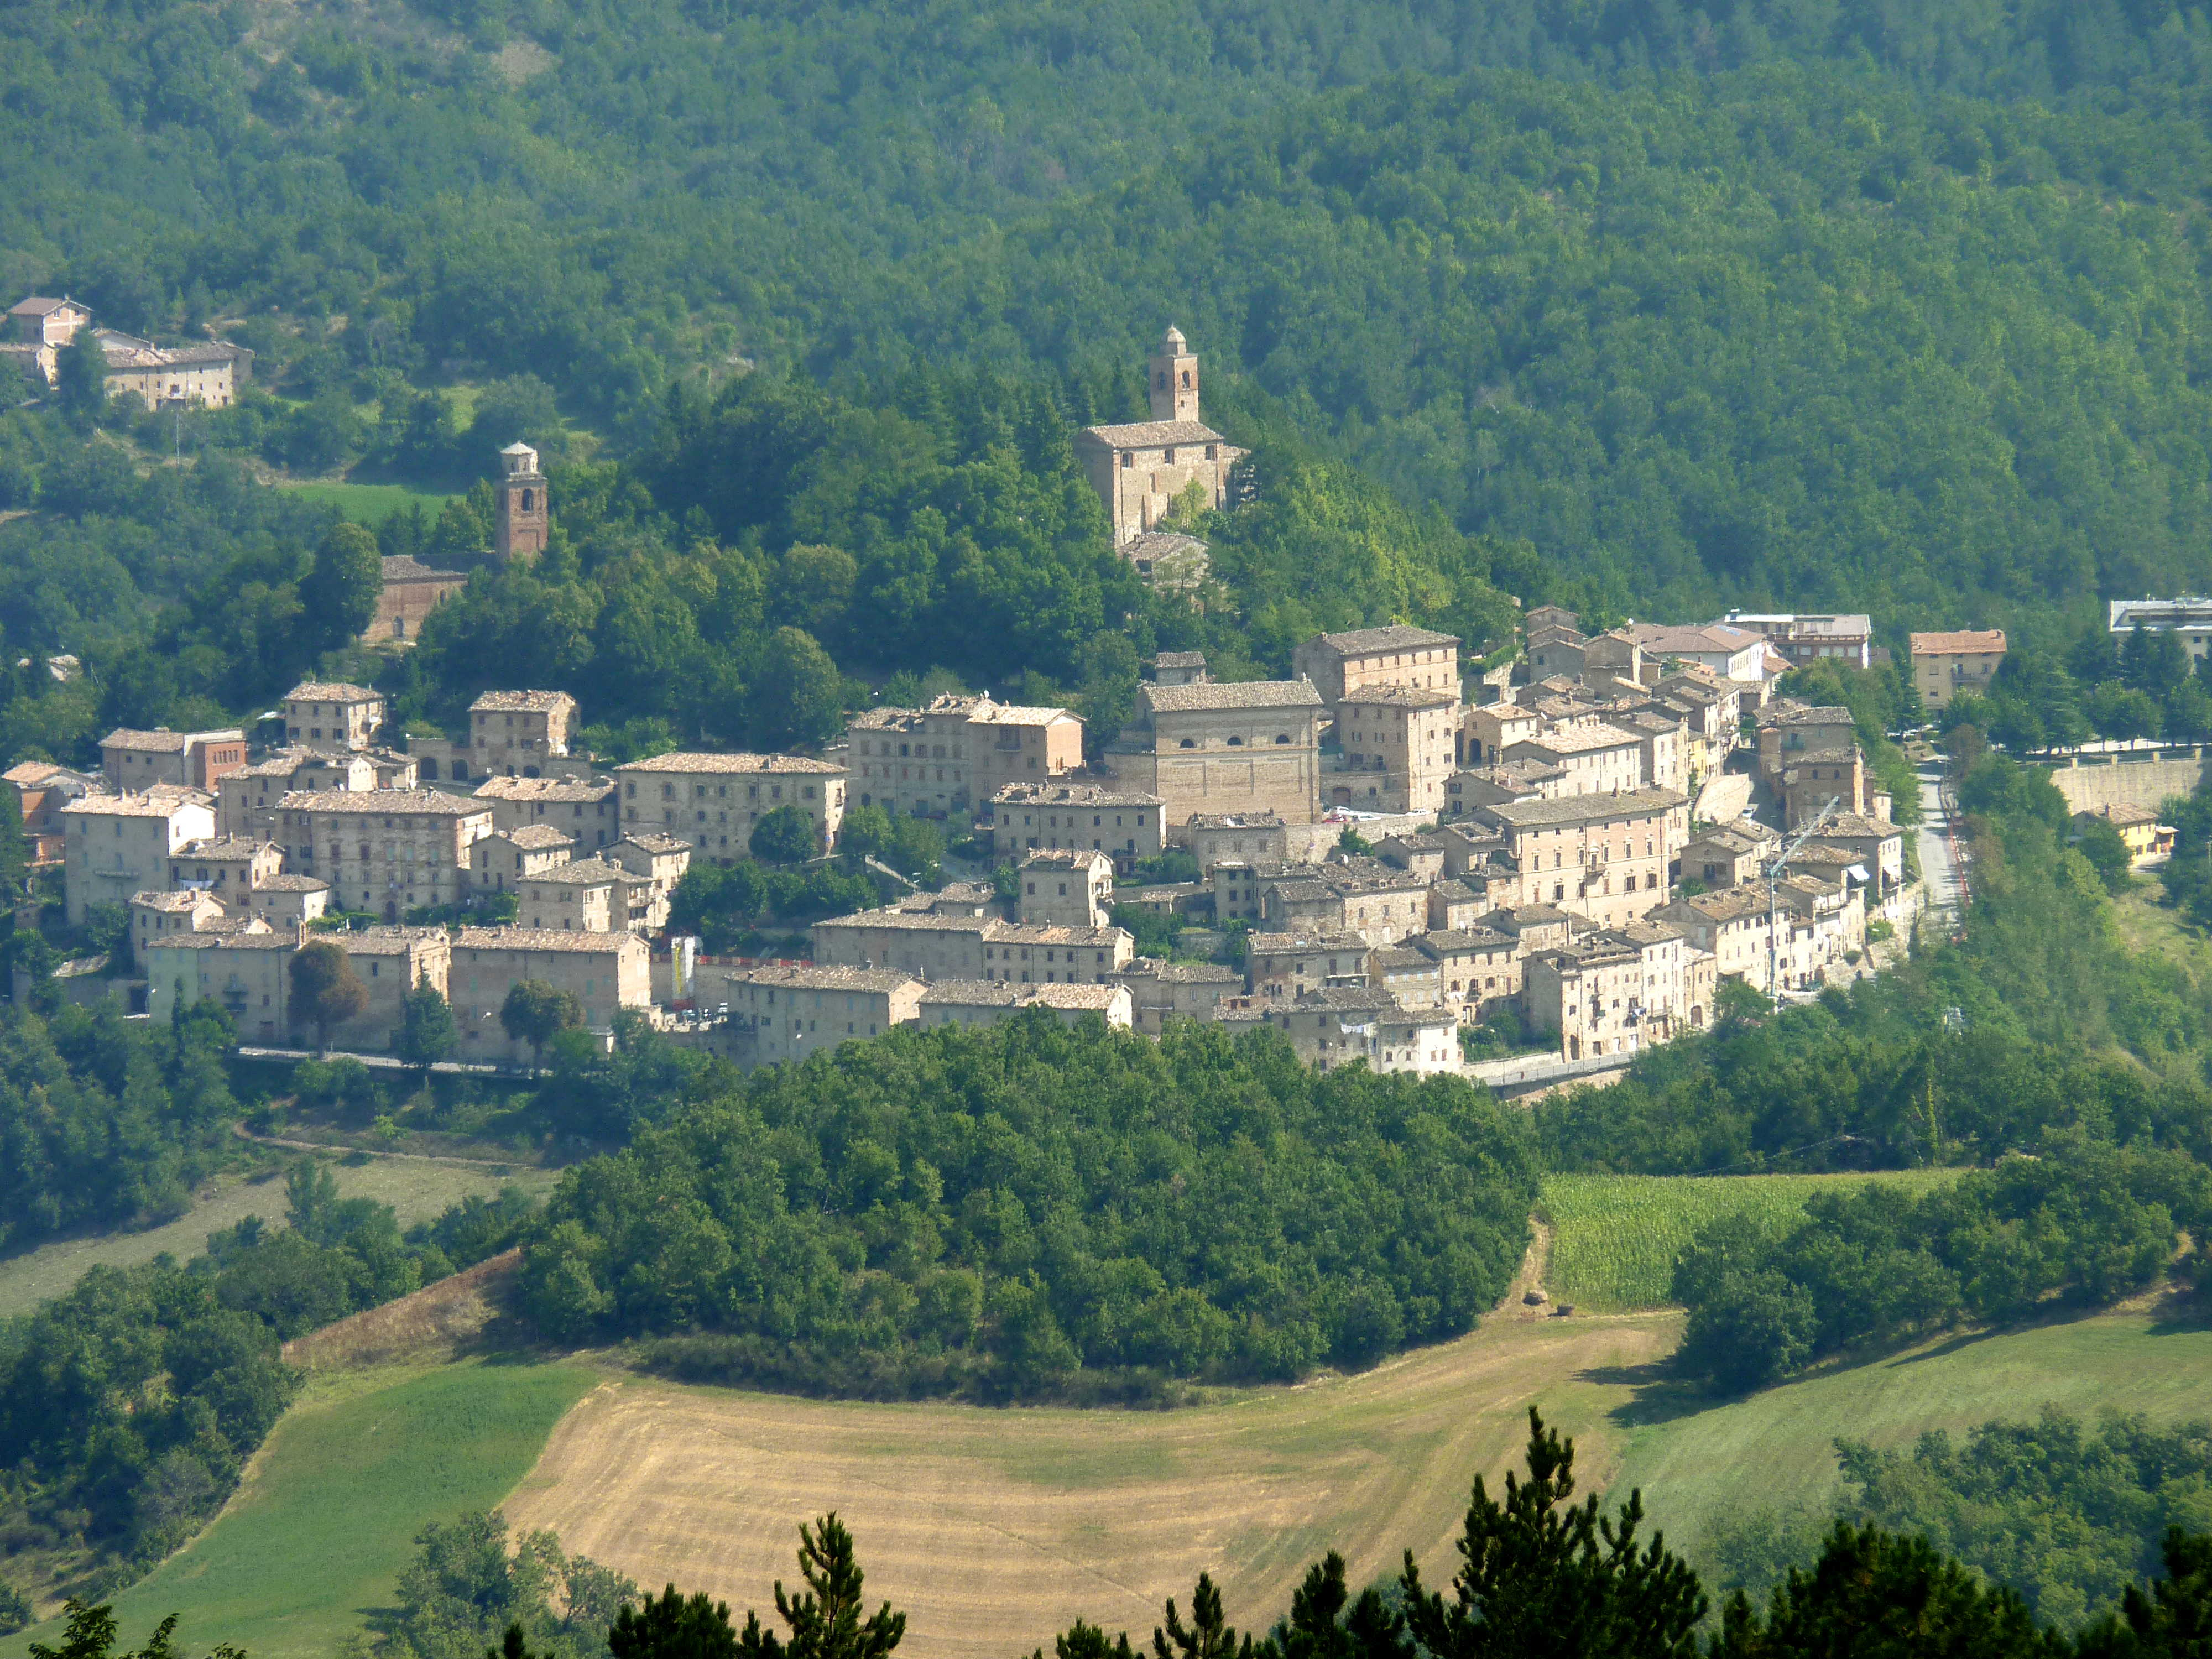 The town of Montefortino in the National Park of the Sibillini Mountains, Italy